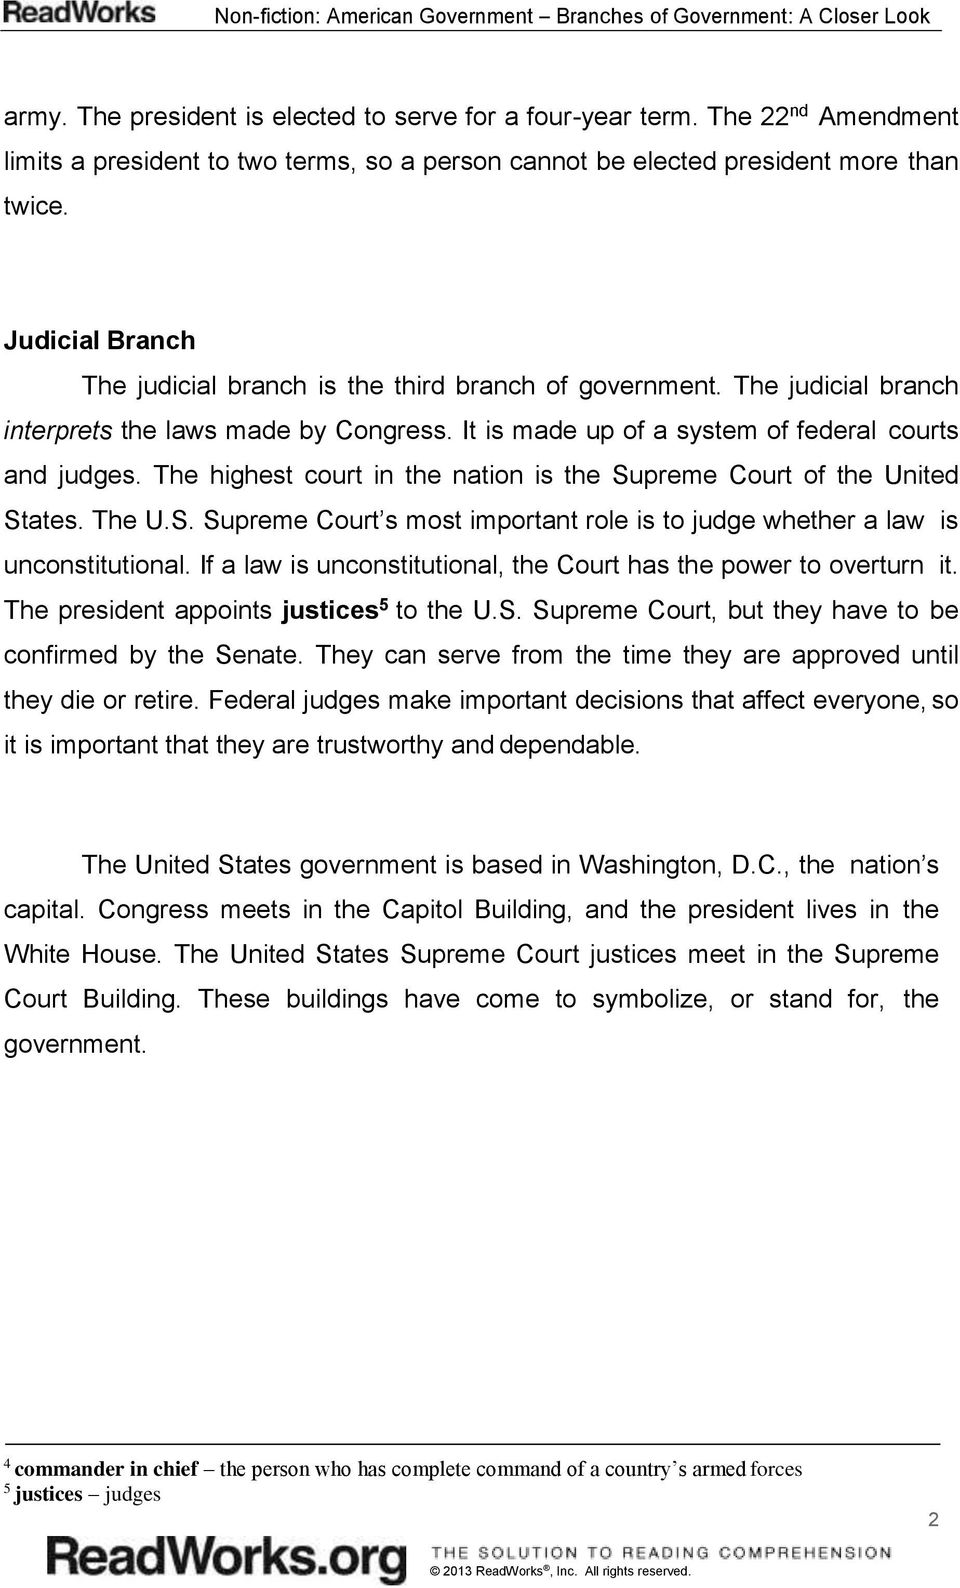 The judicial branch interprets the laws made by Congress. It is made up of a system of federal courts and judges. The highest court in the nation is the Su